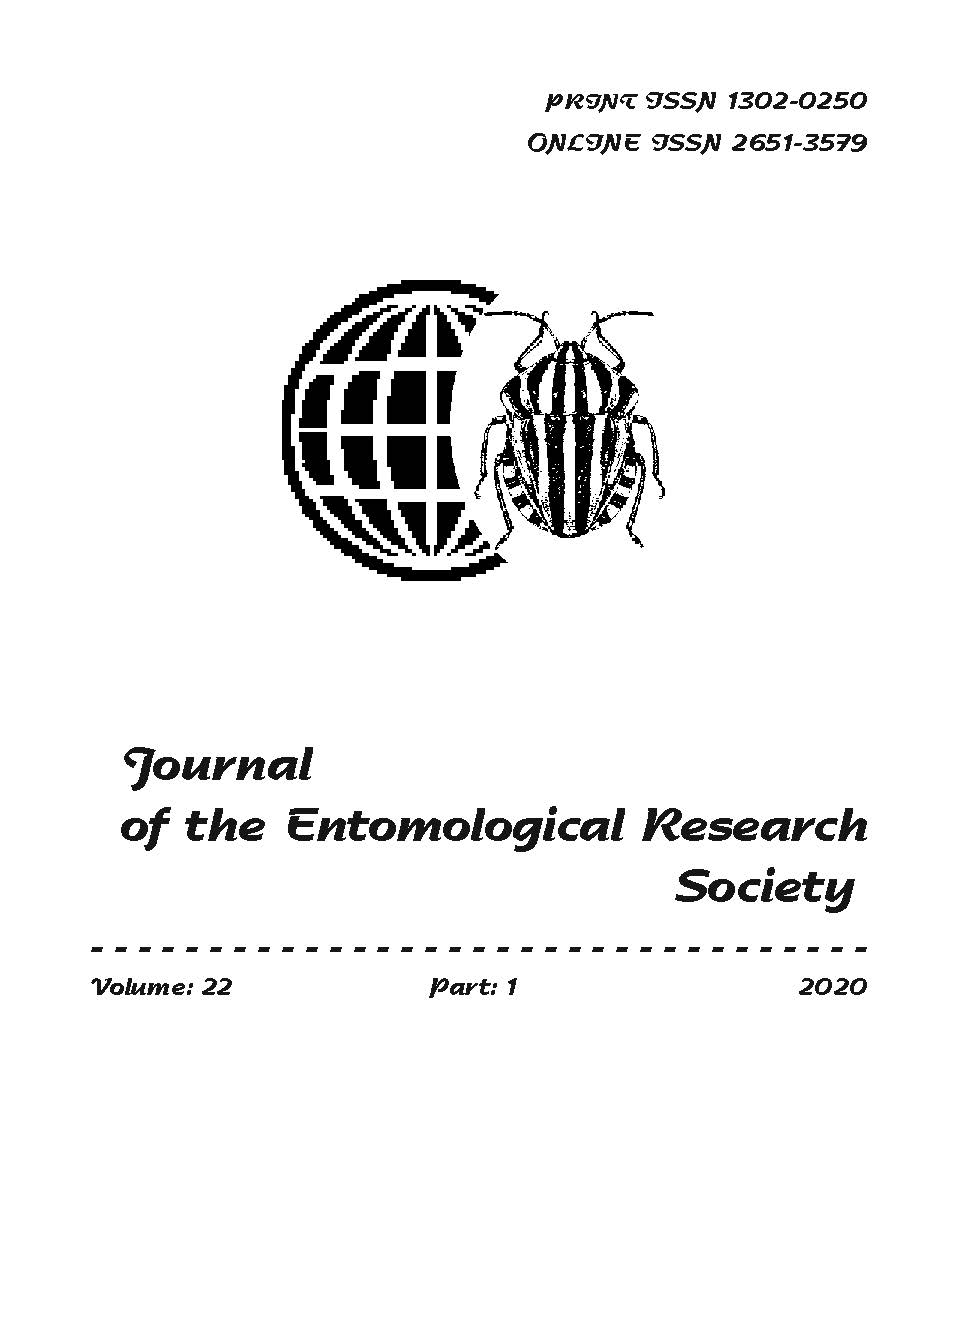 View Vol. 22 No. 1 (2020): Journal of the Entomological Research Society